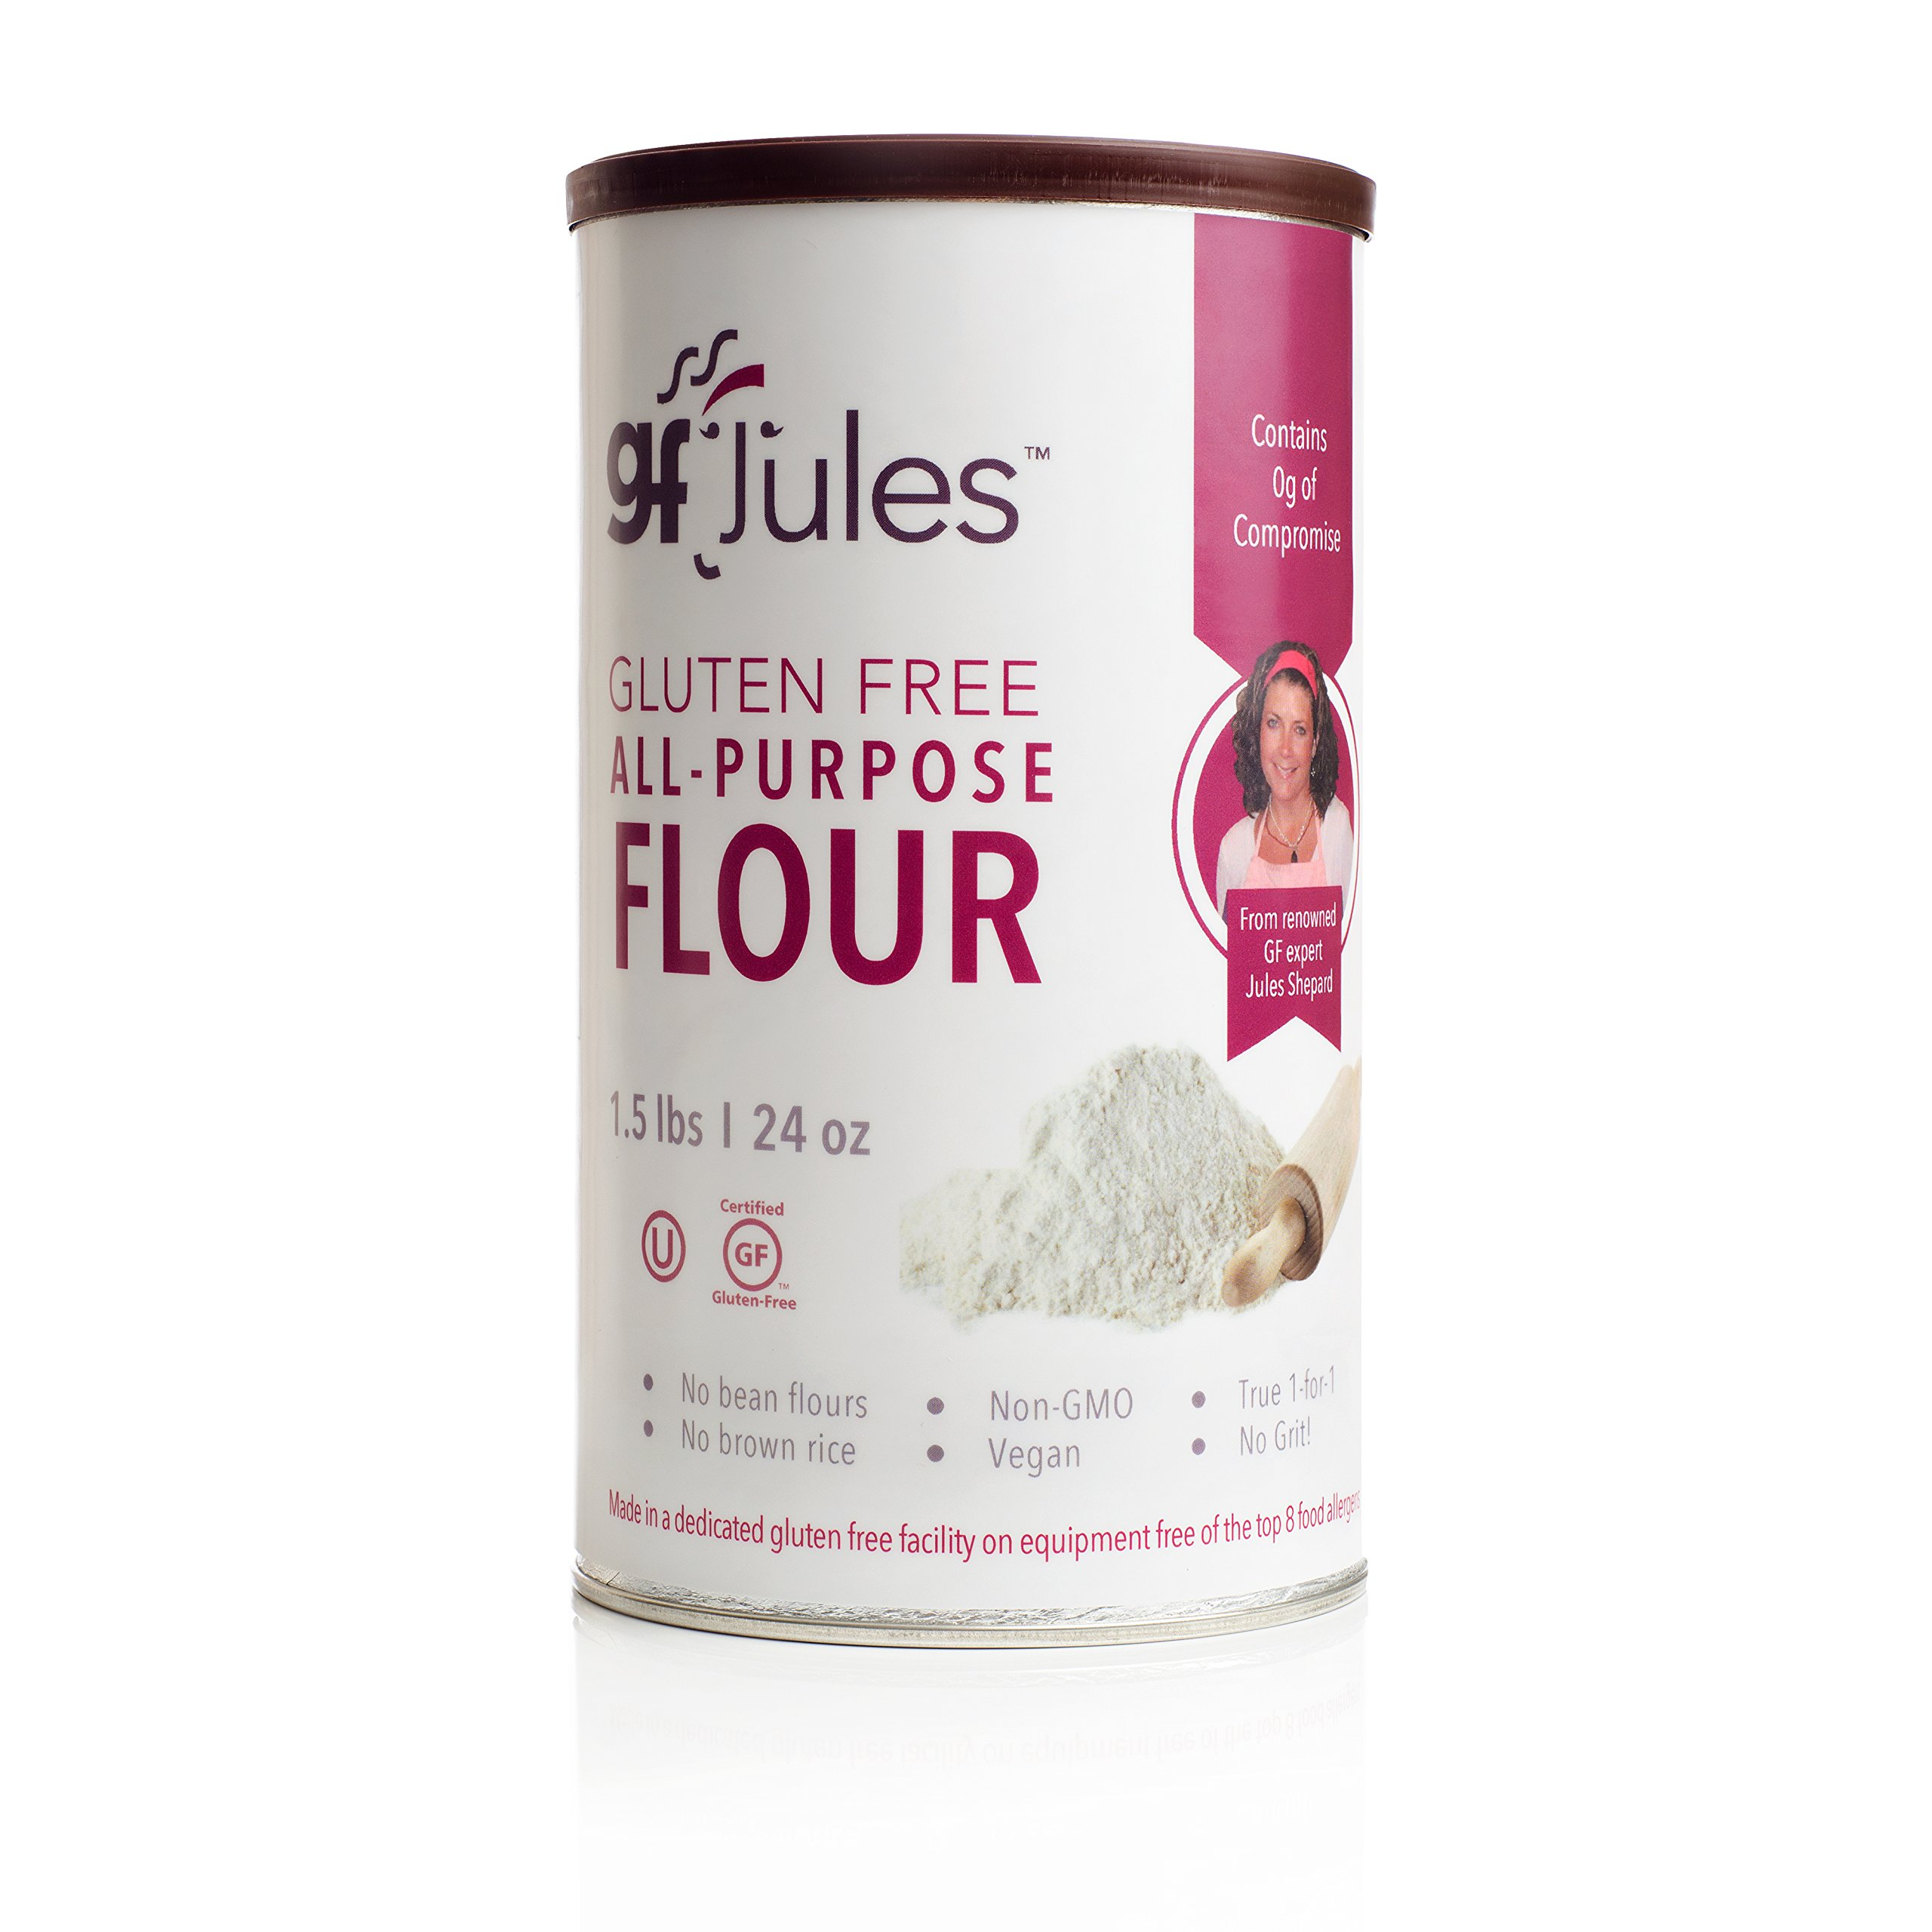 gfJules All Purpose Gluten Free Flour - Voted #1 by GF Consumers 1.5 lb Can, Pack of 1 by gfJules